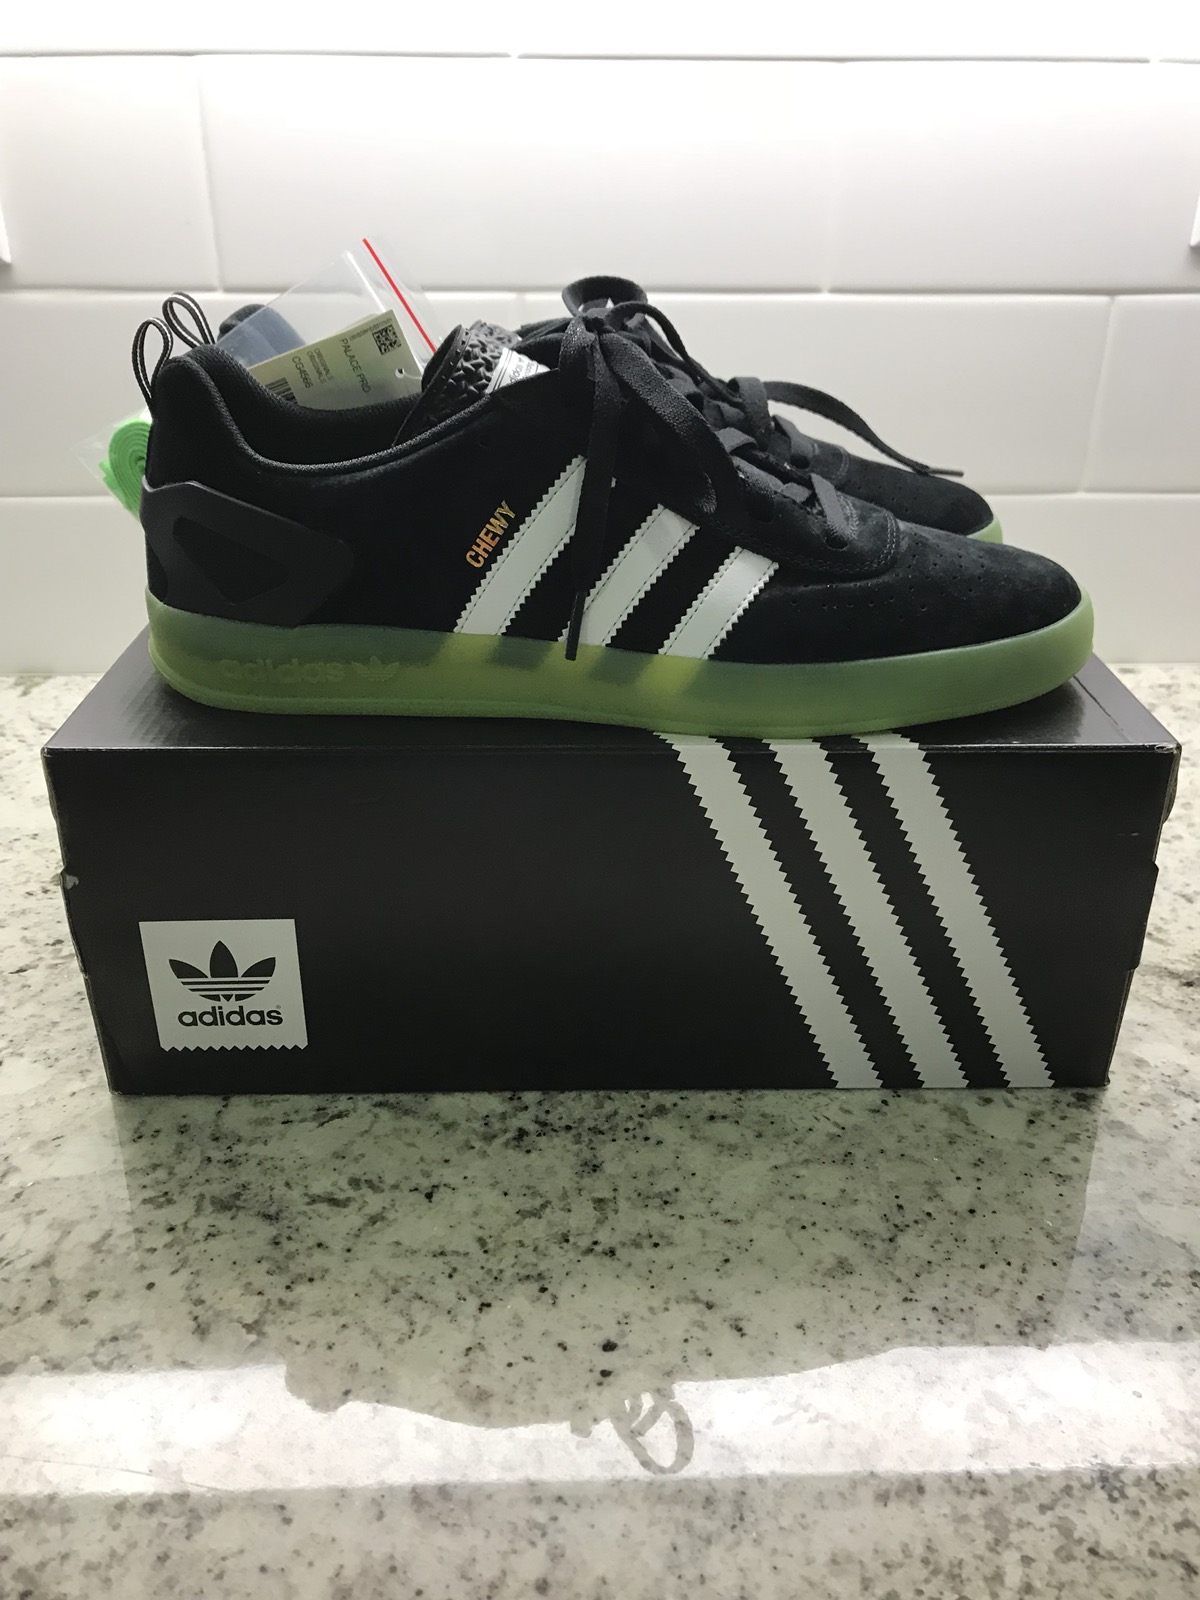 size 40 feac7 bfa7e Adidas Palace Pro - Chewy Cannon (BlackSolar Green) Size 10.5 - Low-Top  Sneakers for Sale - Grailed